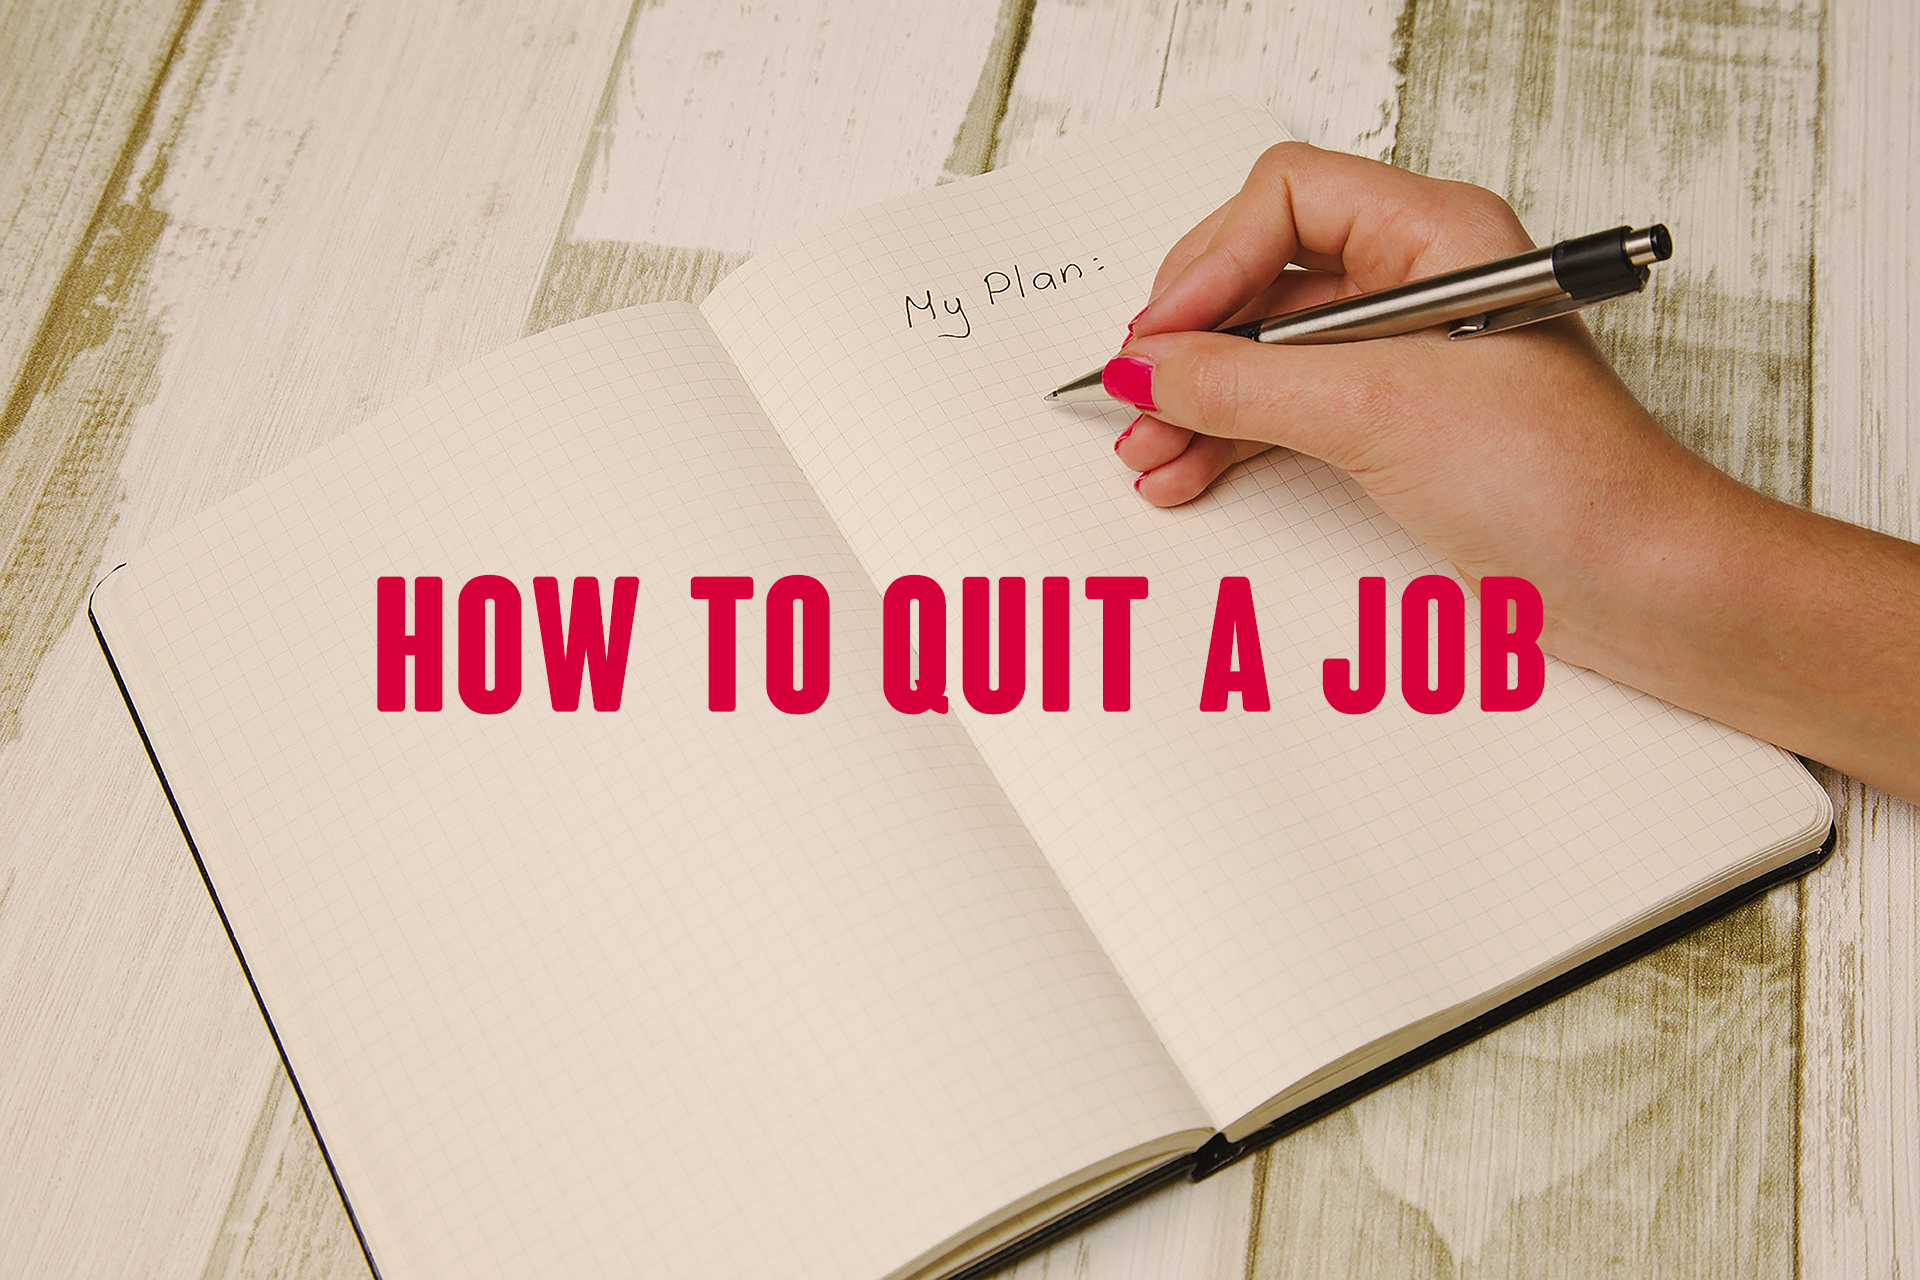 mba how to quit a job blog post